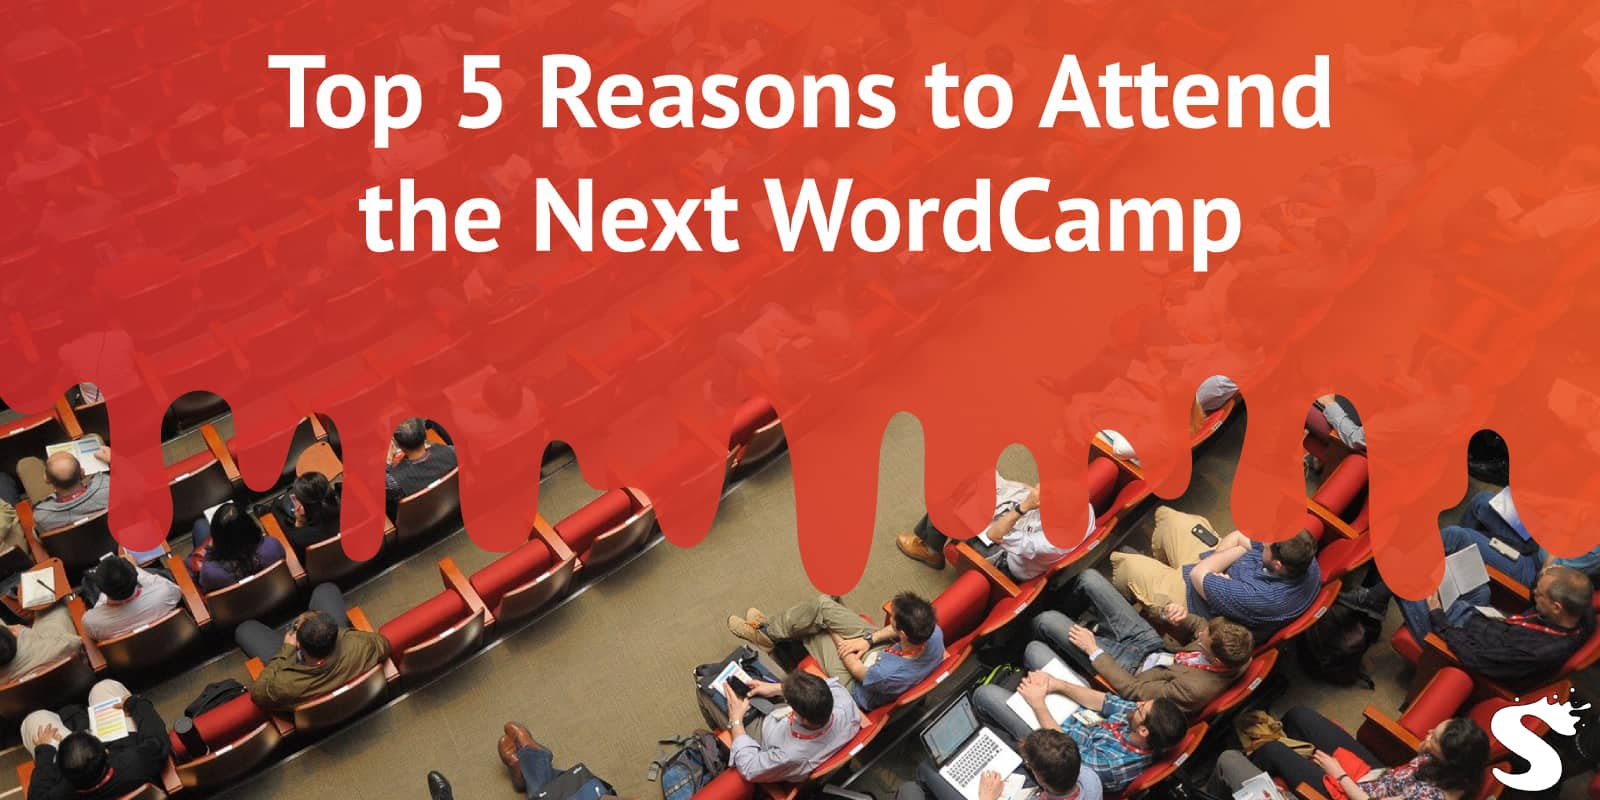 5 reasons to attend the next WordCamp